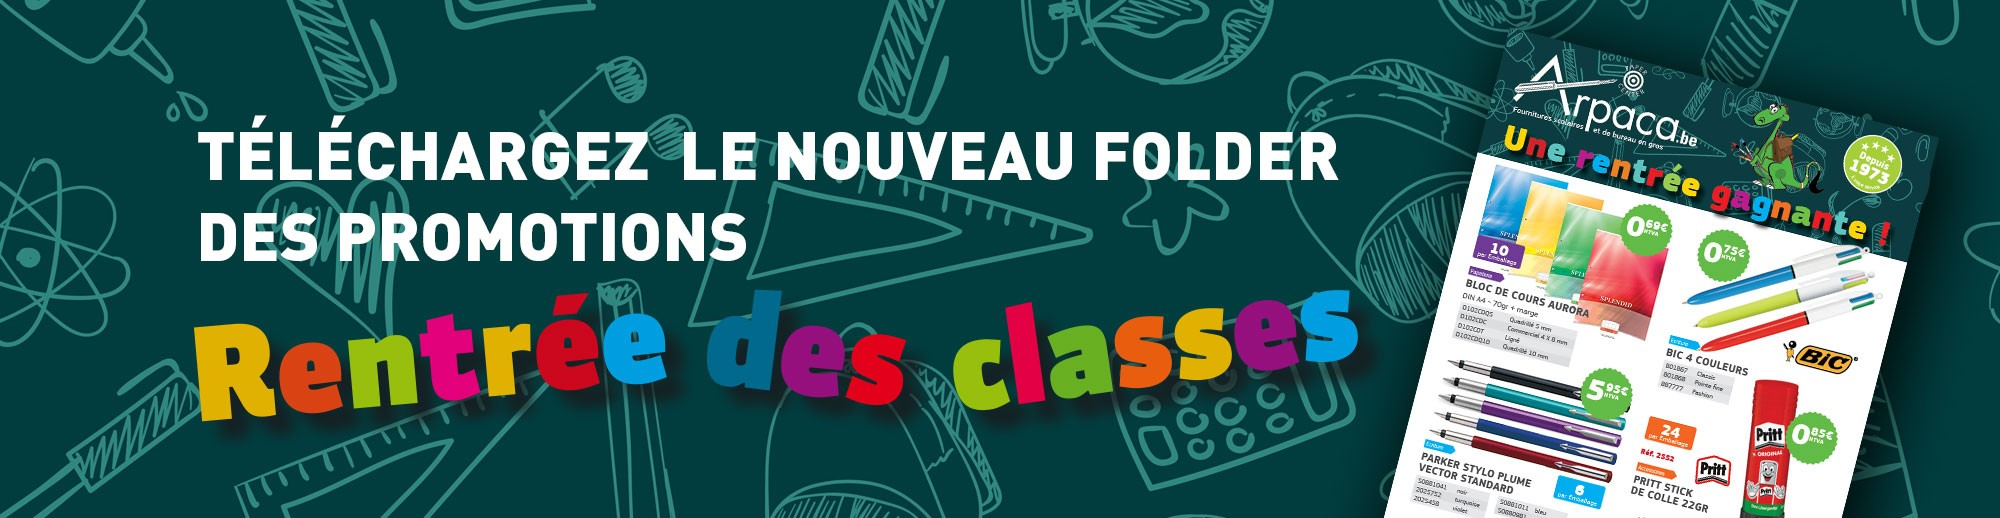 Promotions du Folder rentrée des classes